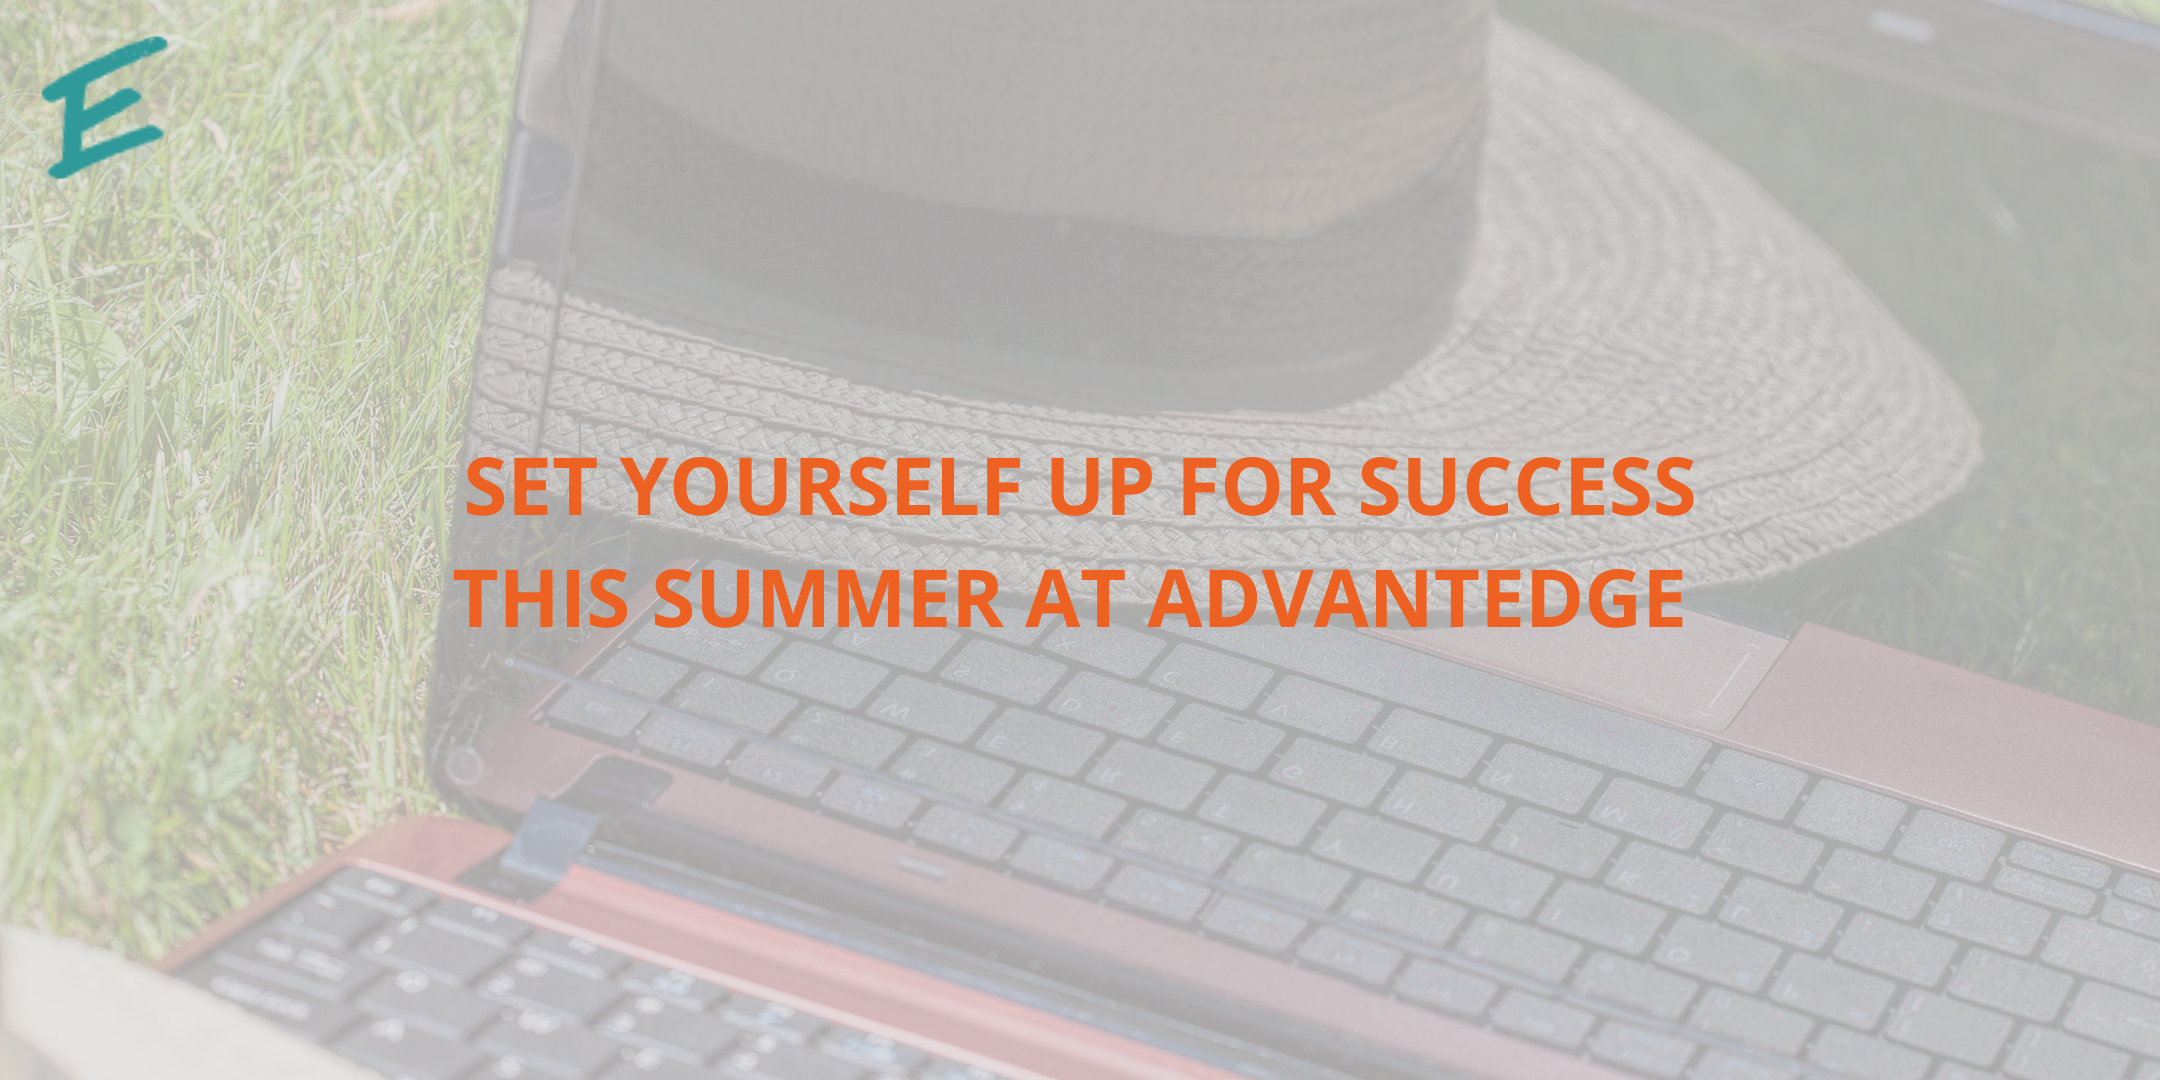 set-yourself-up-for-success-this-summer-at-advantedge